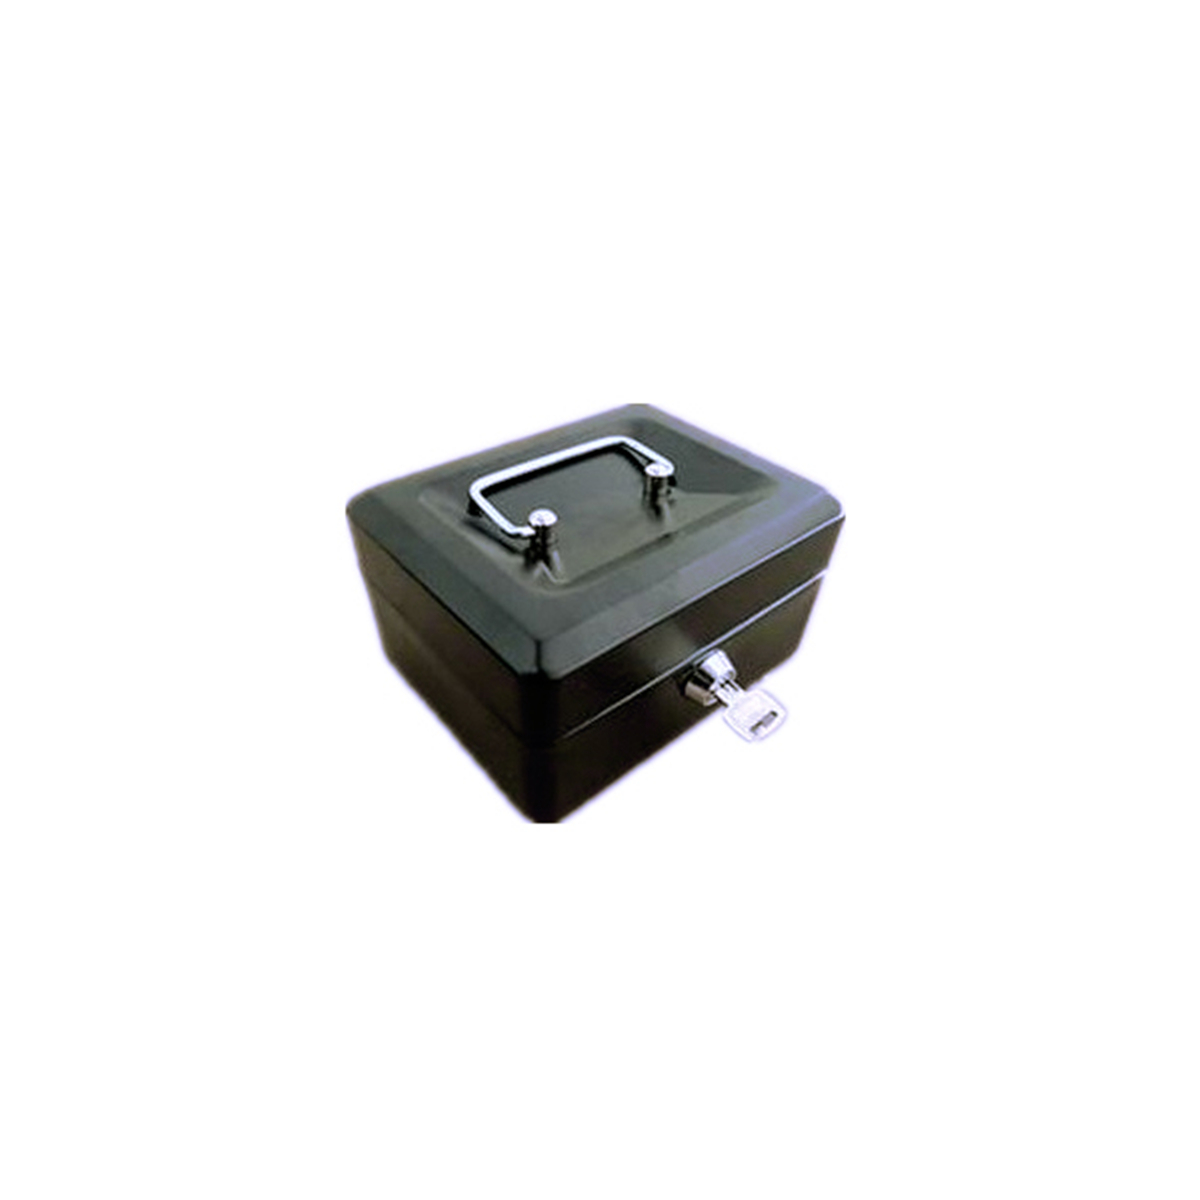 Metal Lock Latch Steel Petty Cash Money Box Removable Tray Holder Security Safe